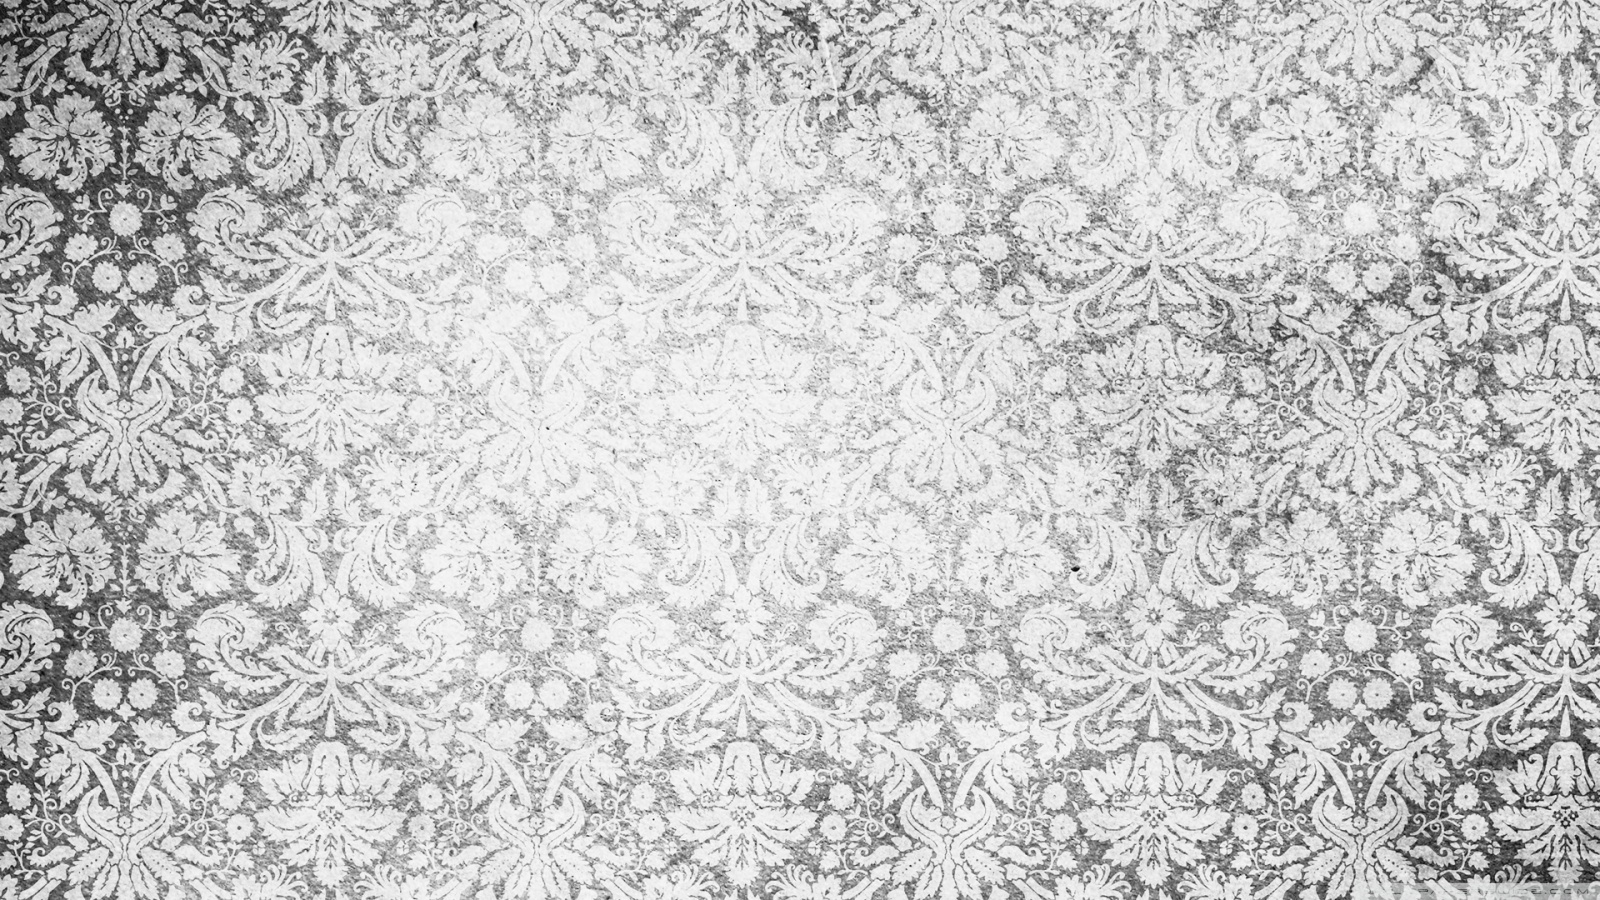 Vintage Pattern Black And White HD desktop wallpaper : High